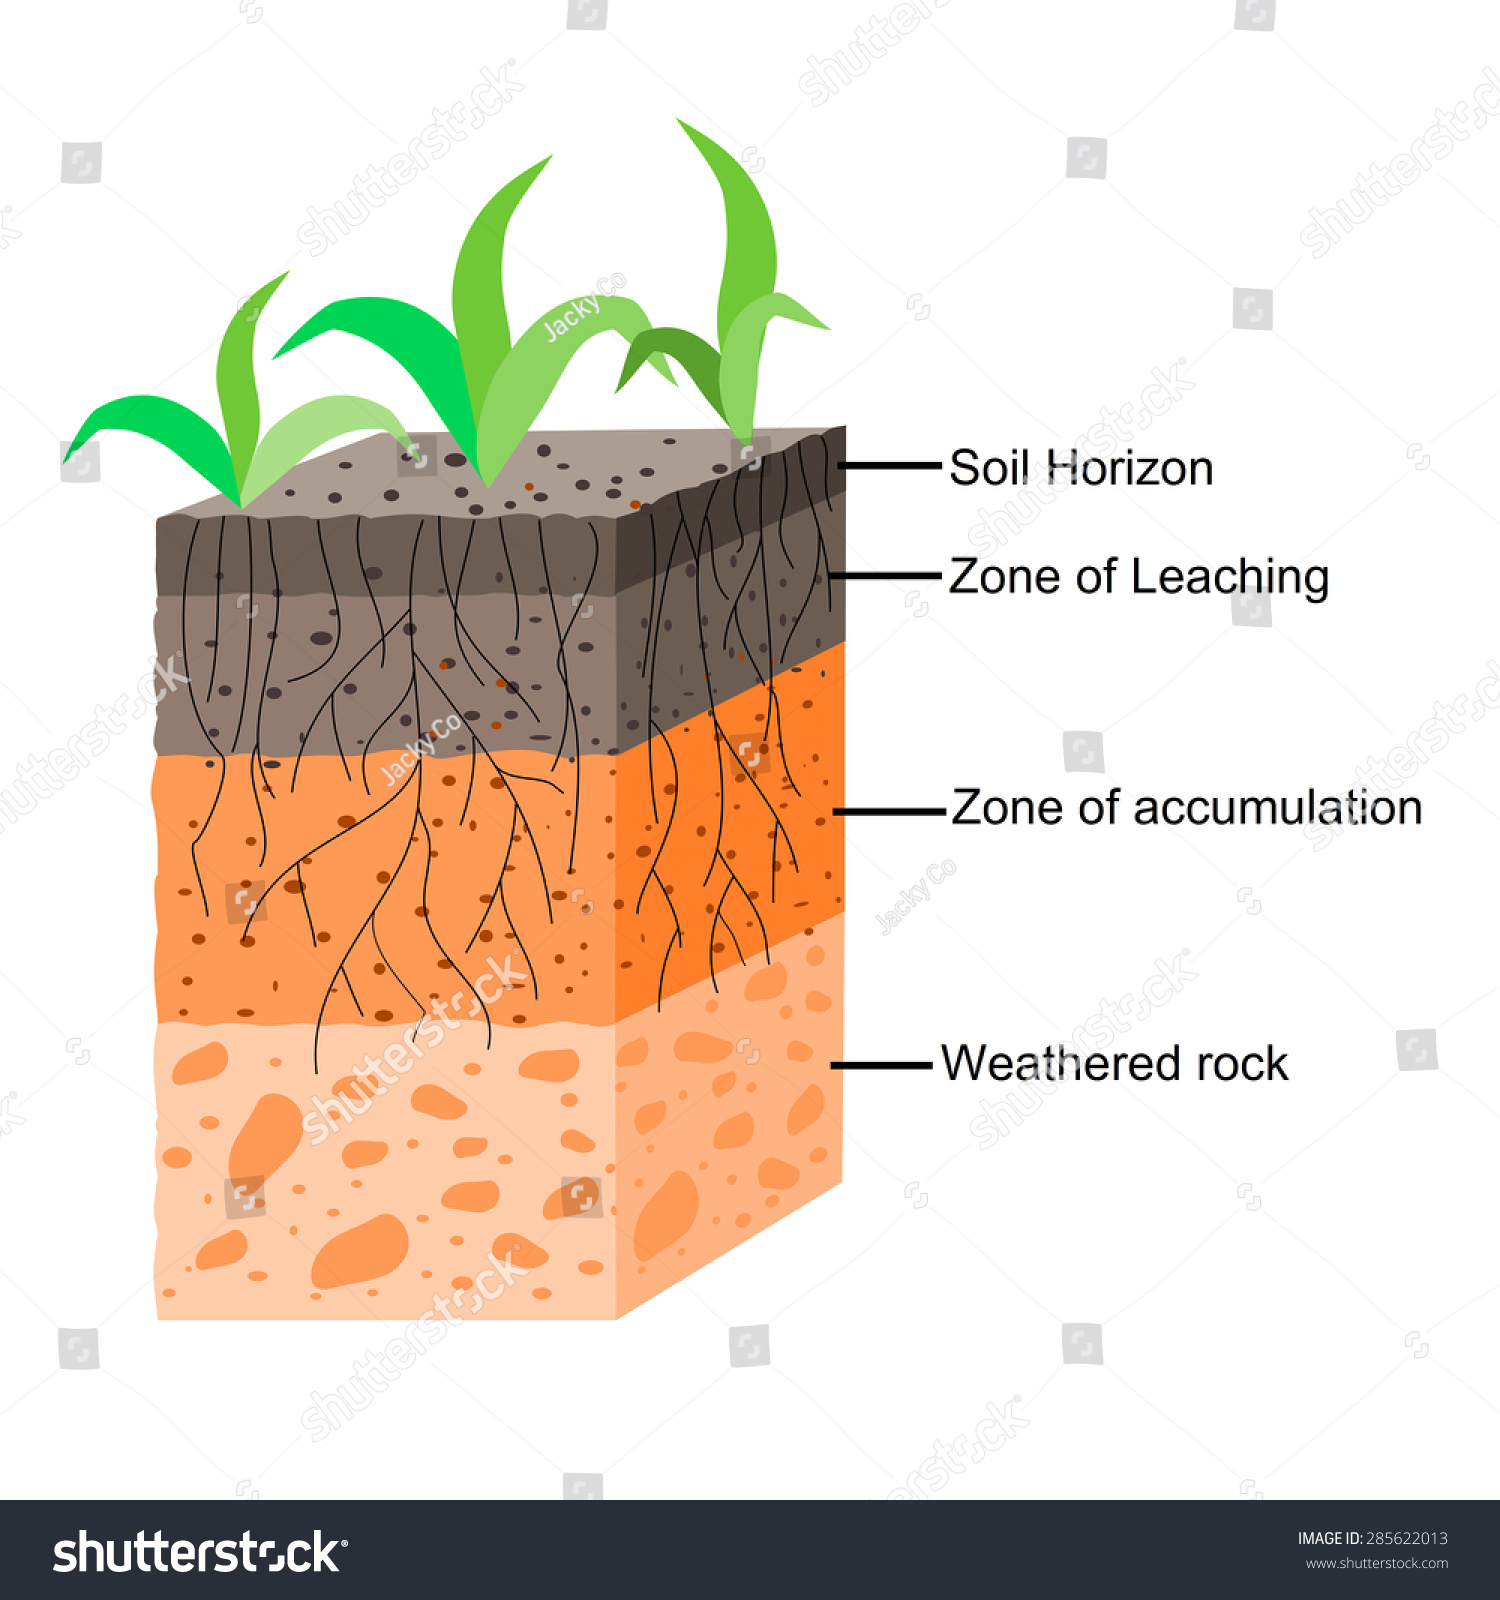 Soil Formation And Soil Horizons Stock Photo